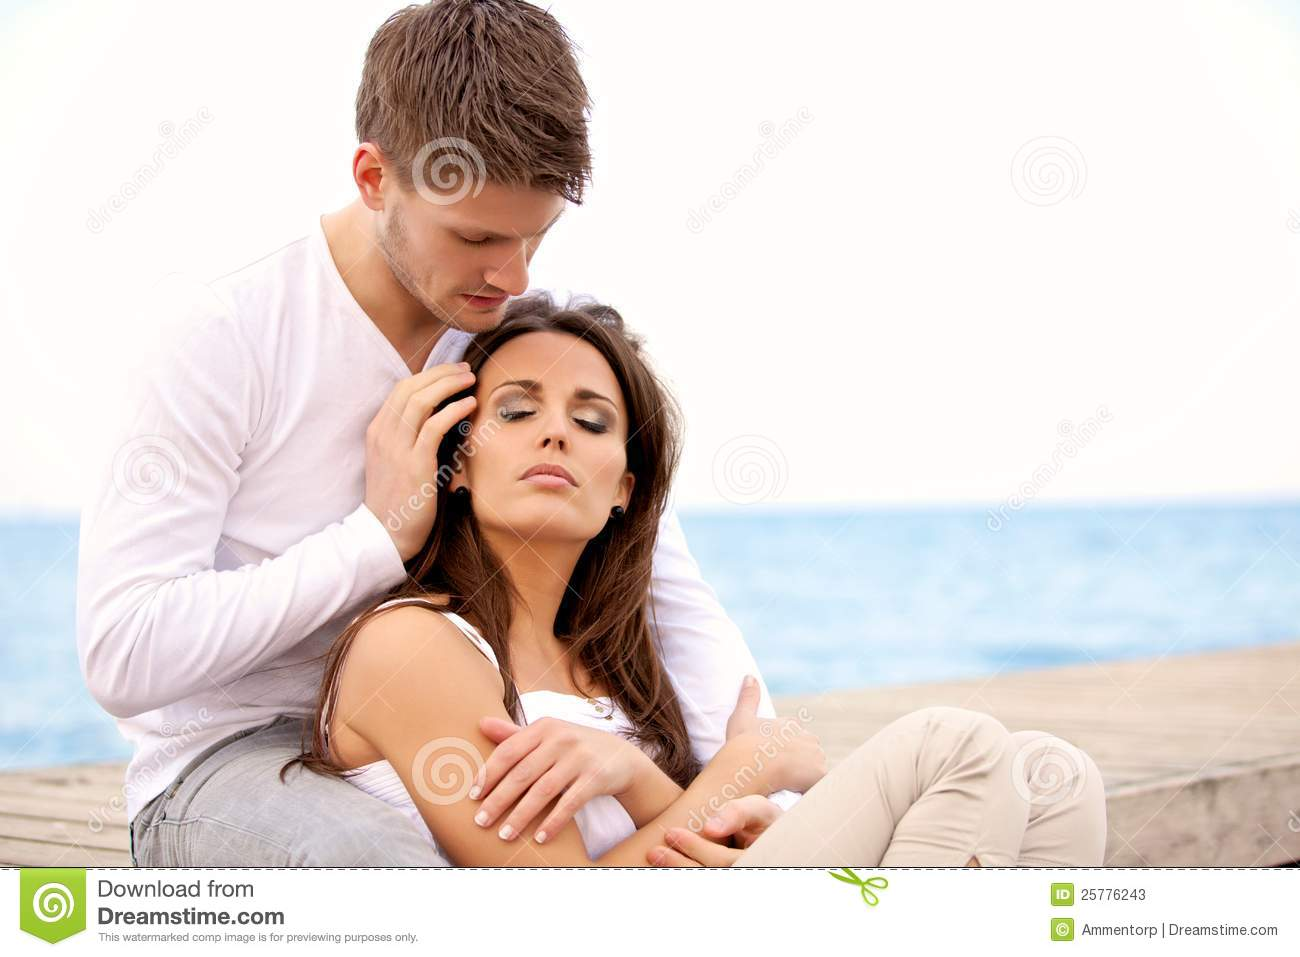 Romantic Couple Sitting Together Stock Photos - Image: 25776243